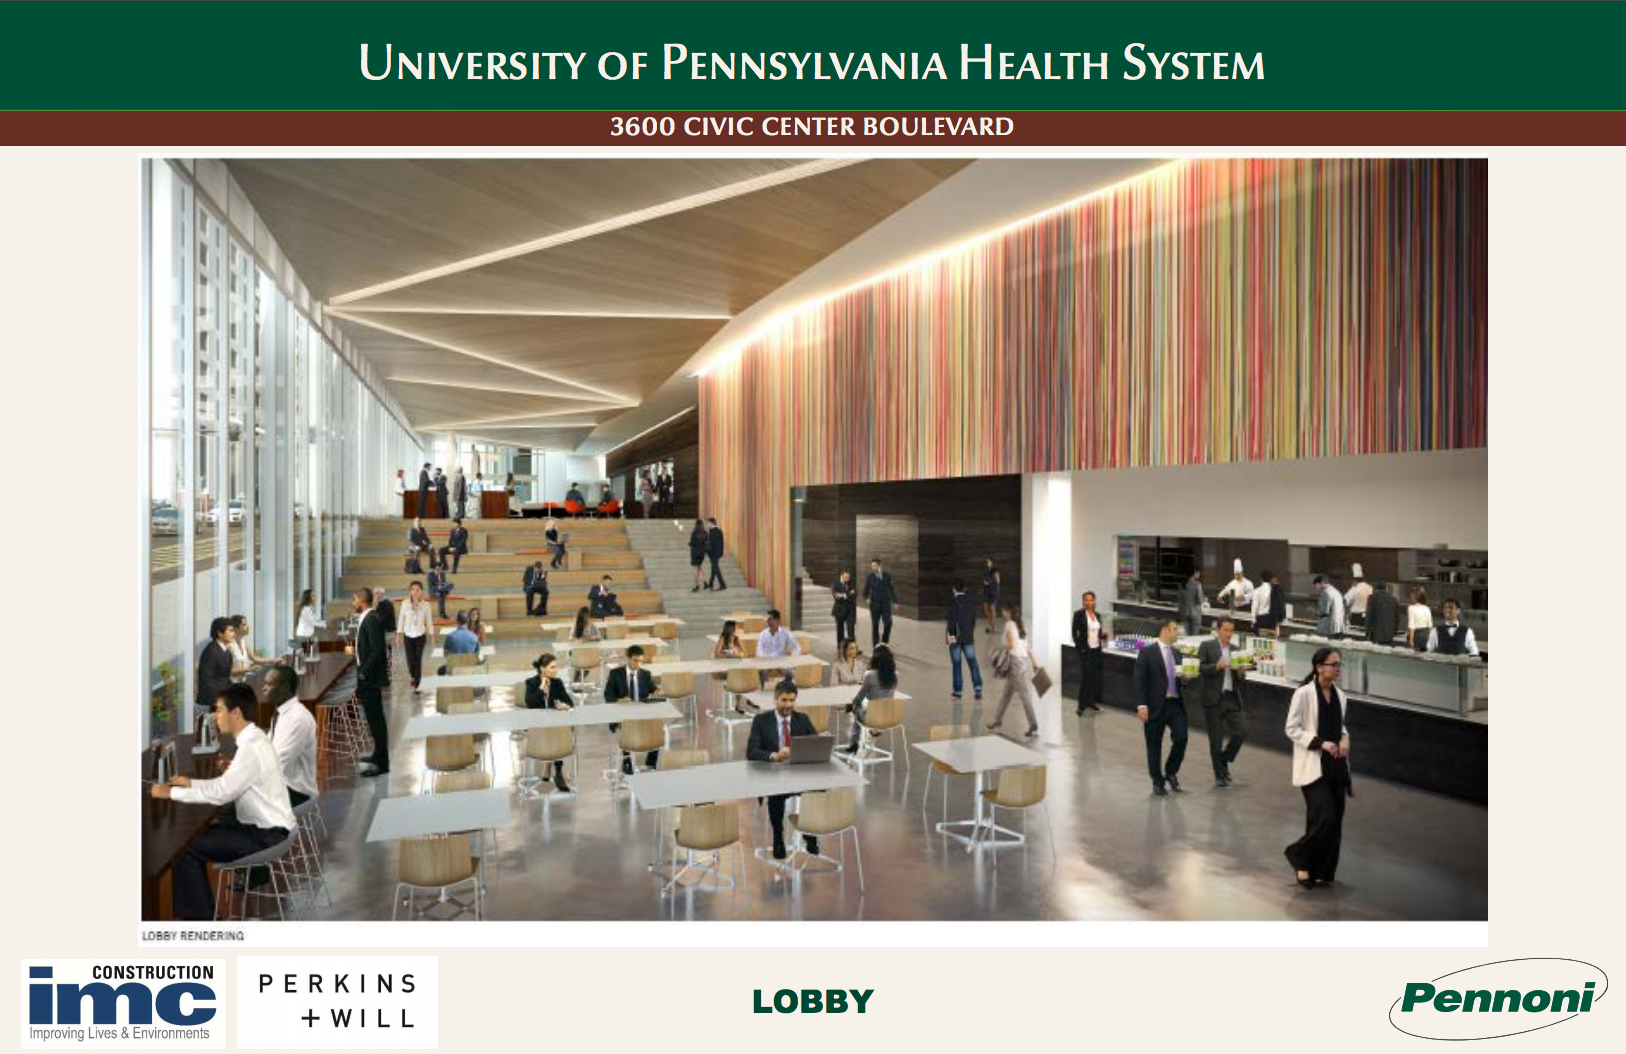 3600 Civic Center Blvd, Lobby rendering | August 2016 CDR | IMC, Perkins + Will, Pennoni